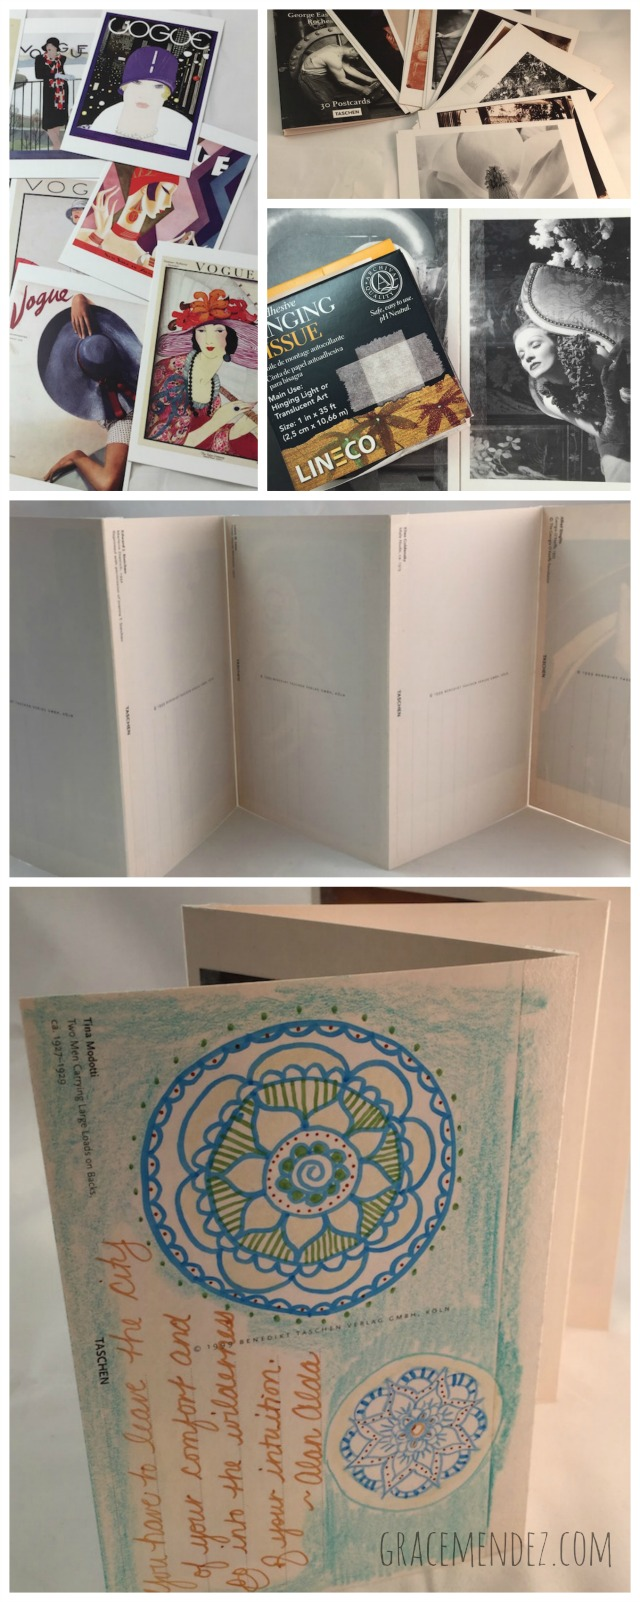 Grace Mendez: Accordion Post Card Book